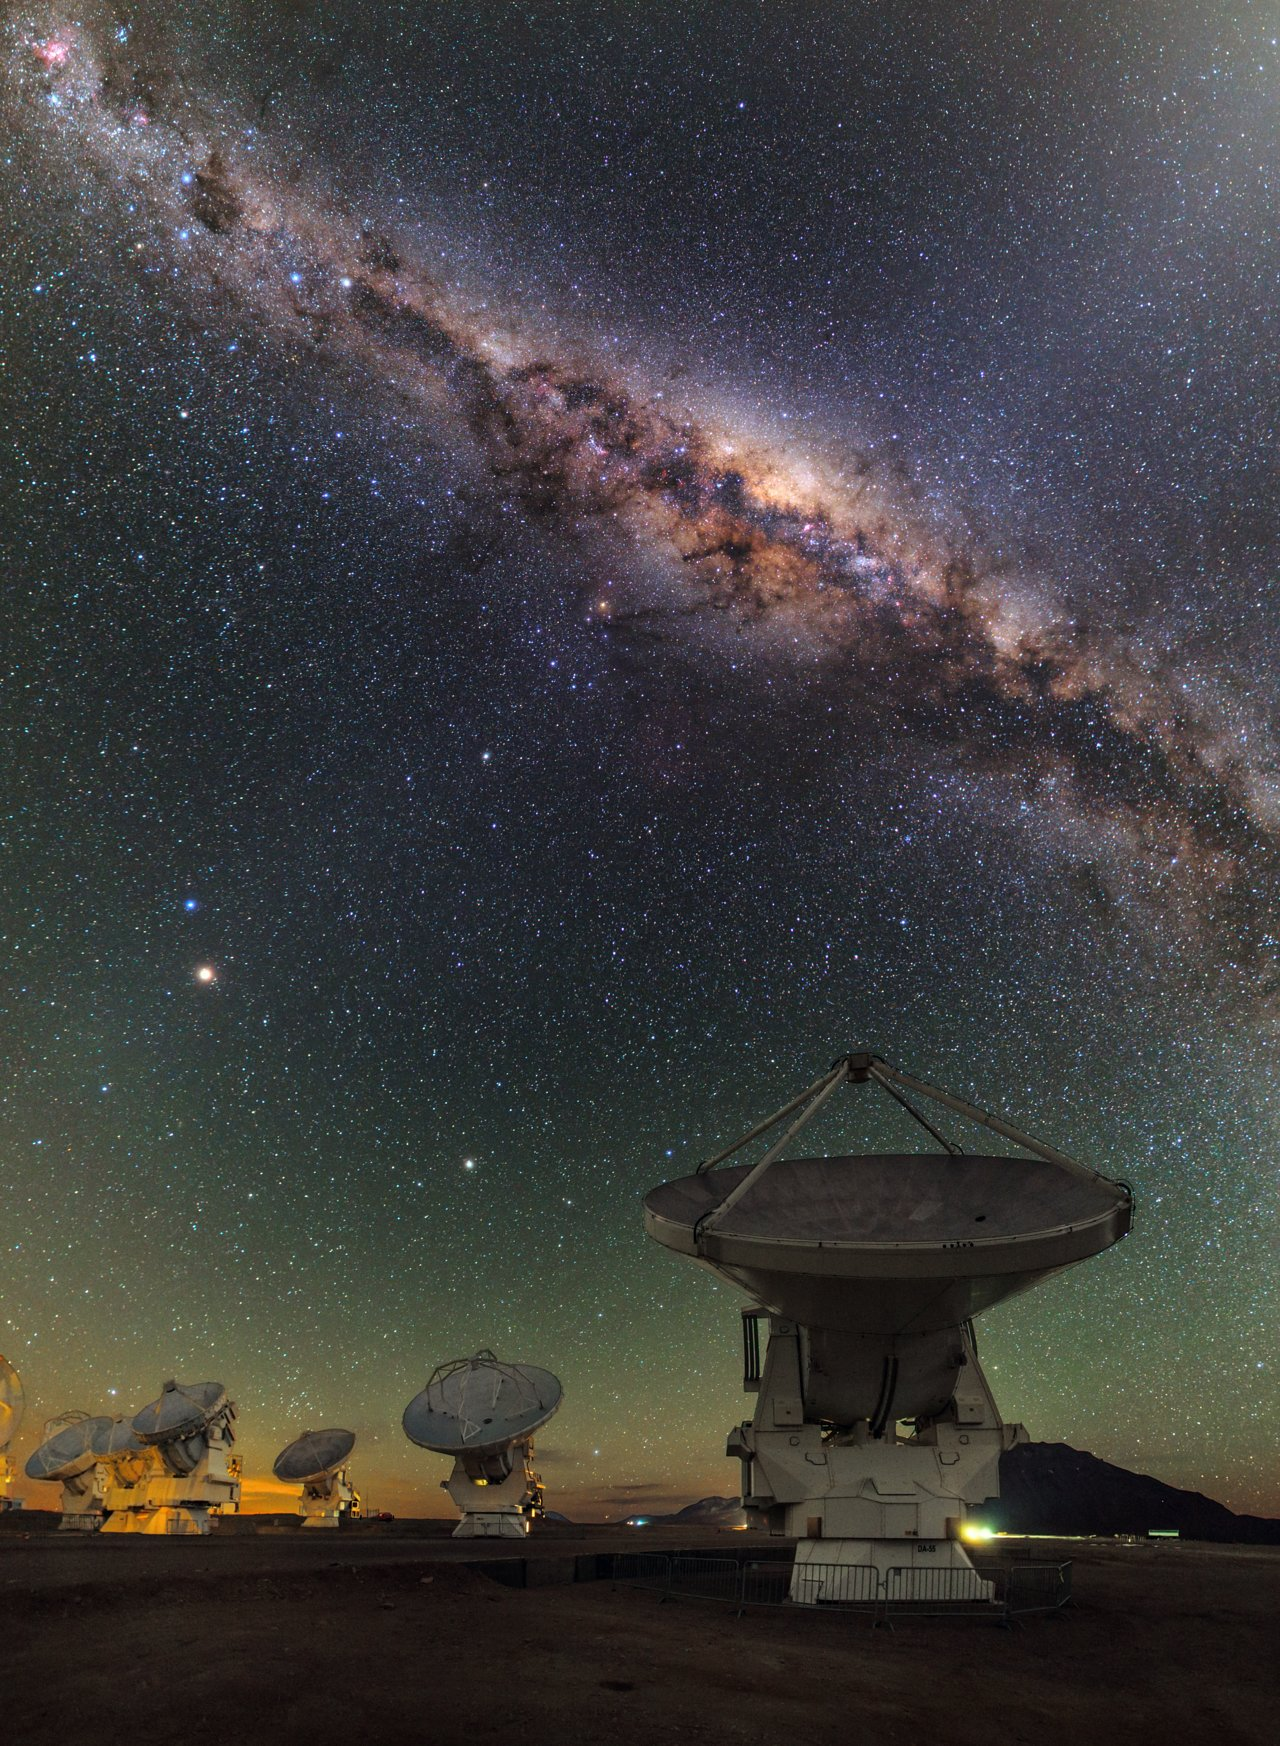 Mounted image 206: ALMA and the centre of the Milky Way